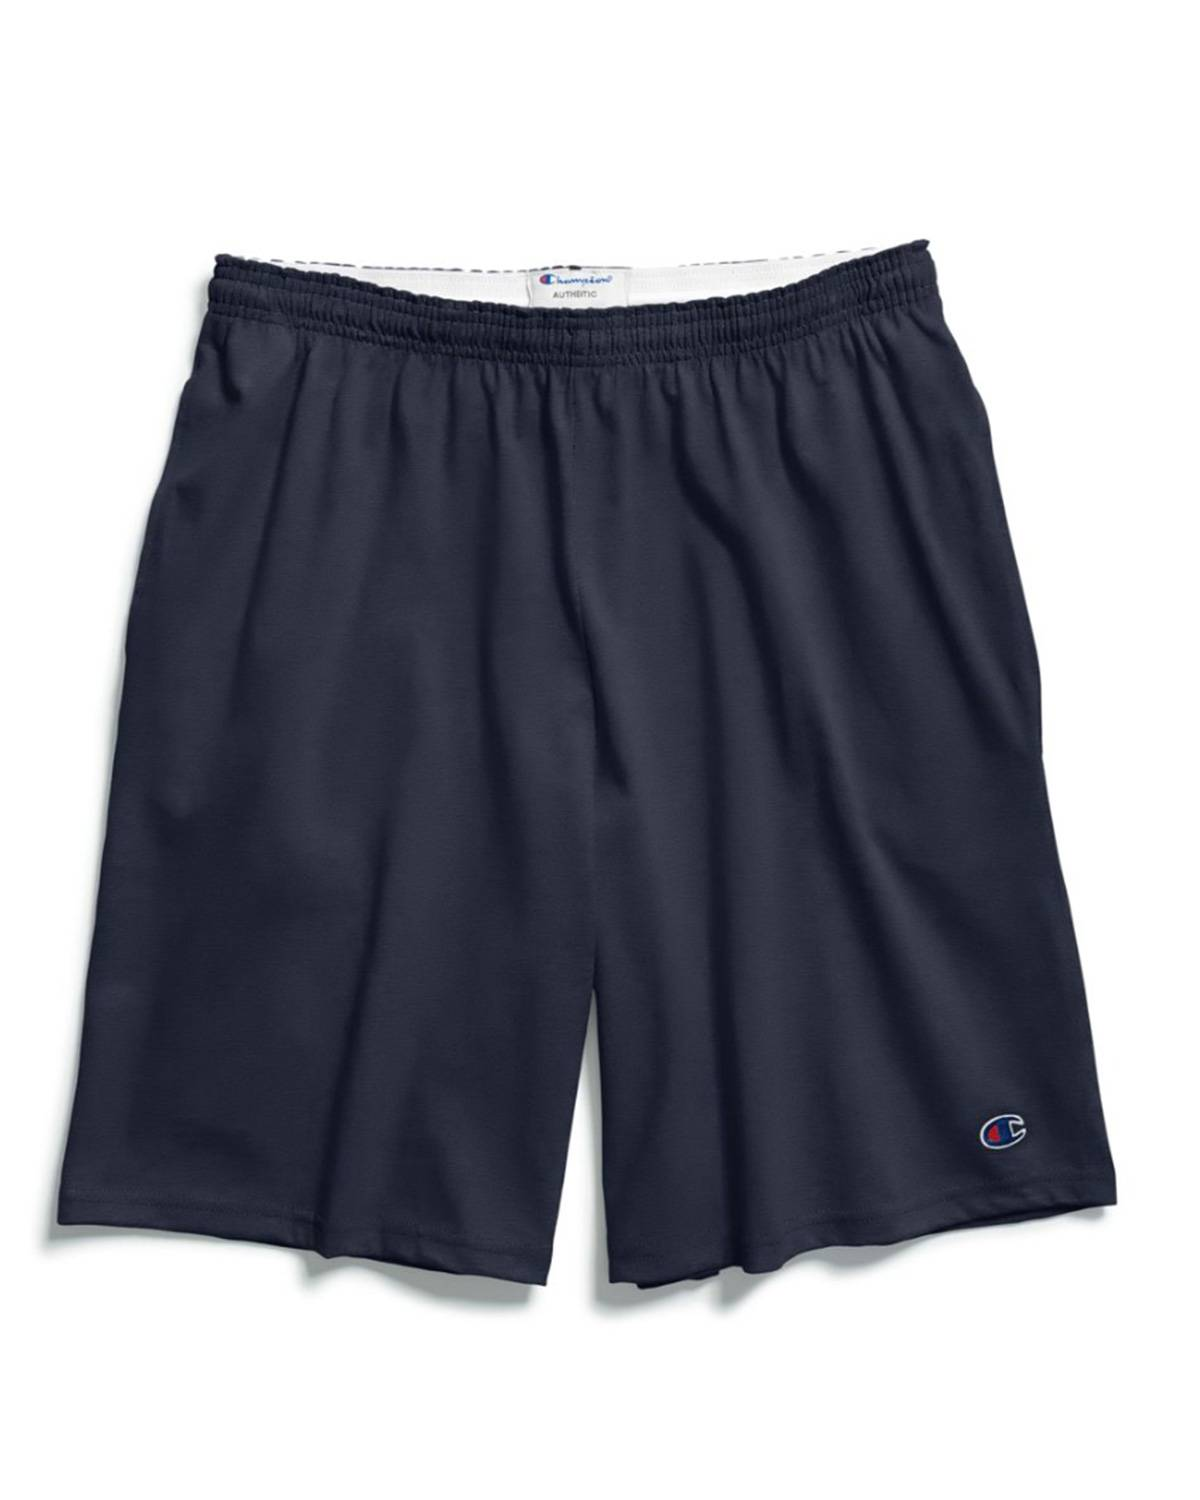 Champion 85653 Authentic Mens Shorts with Pockets - Navy - L 85653